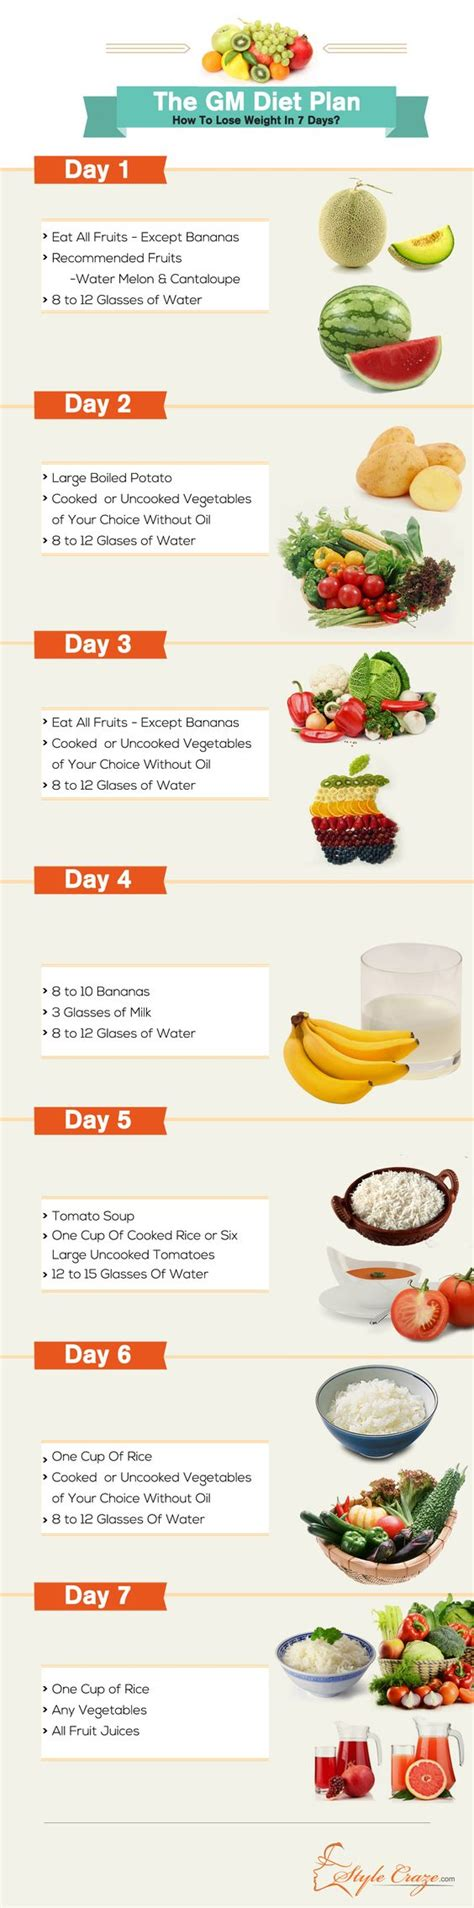 Week Detox Lose Weight by The Gm Diet Plan How To Lose Weight In Just 7 Days